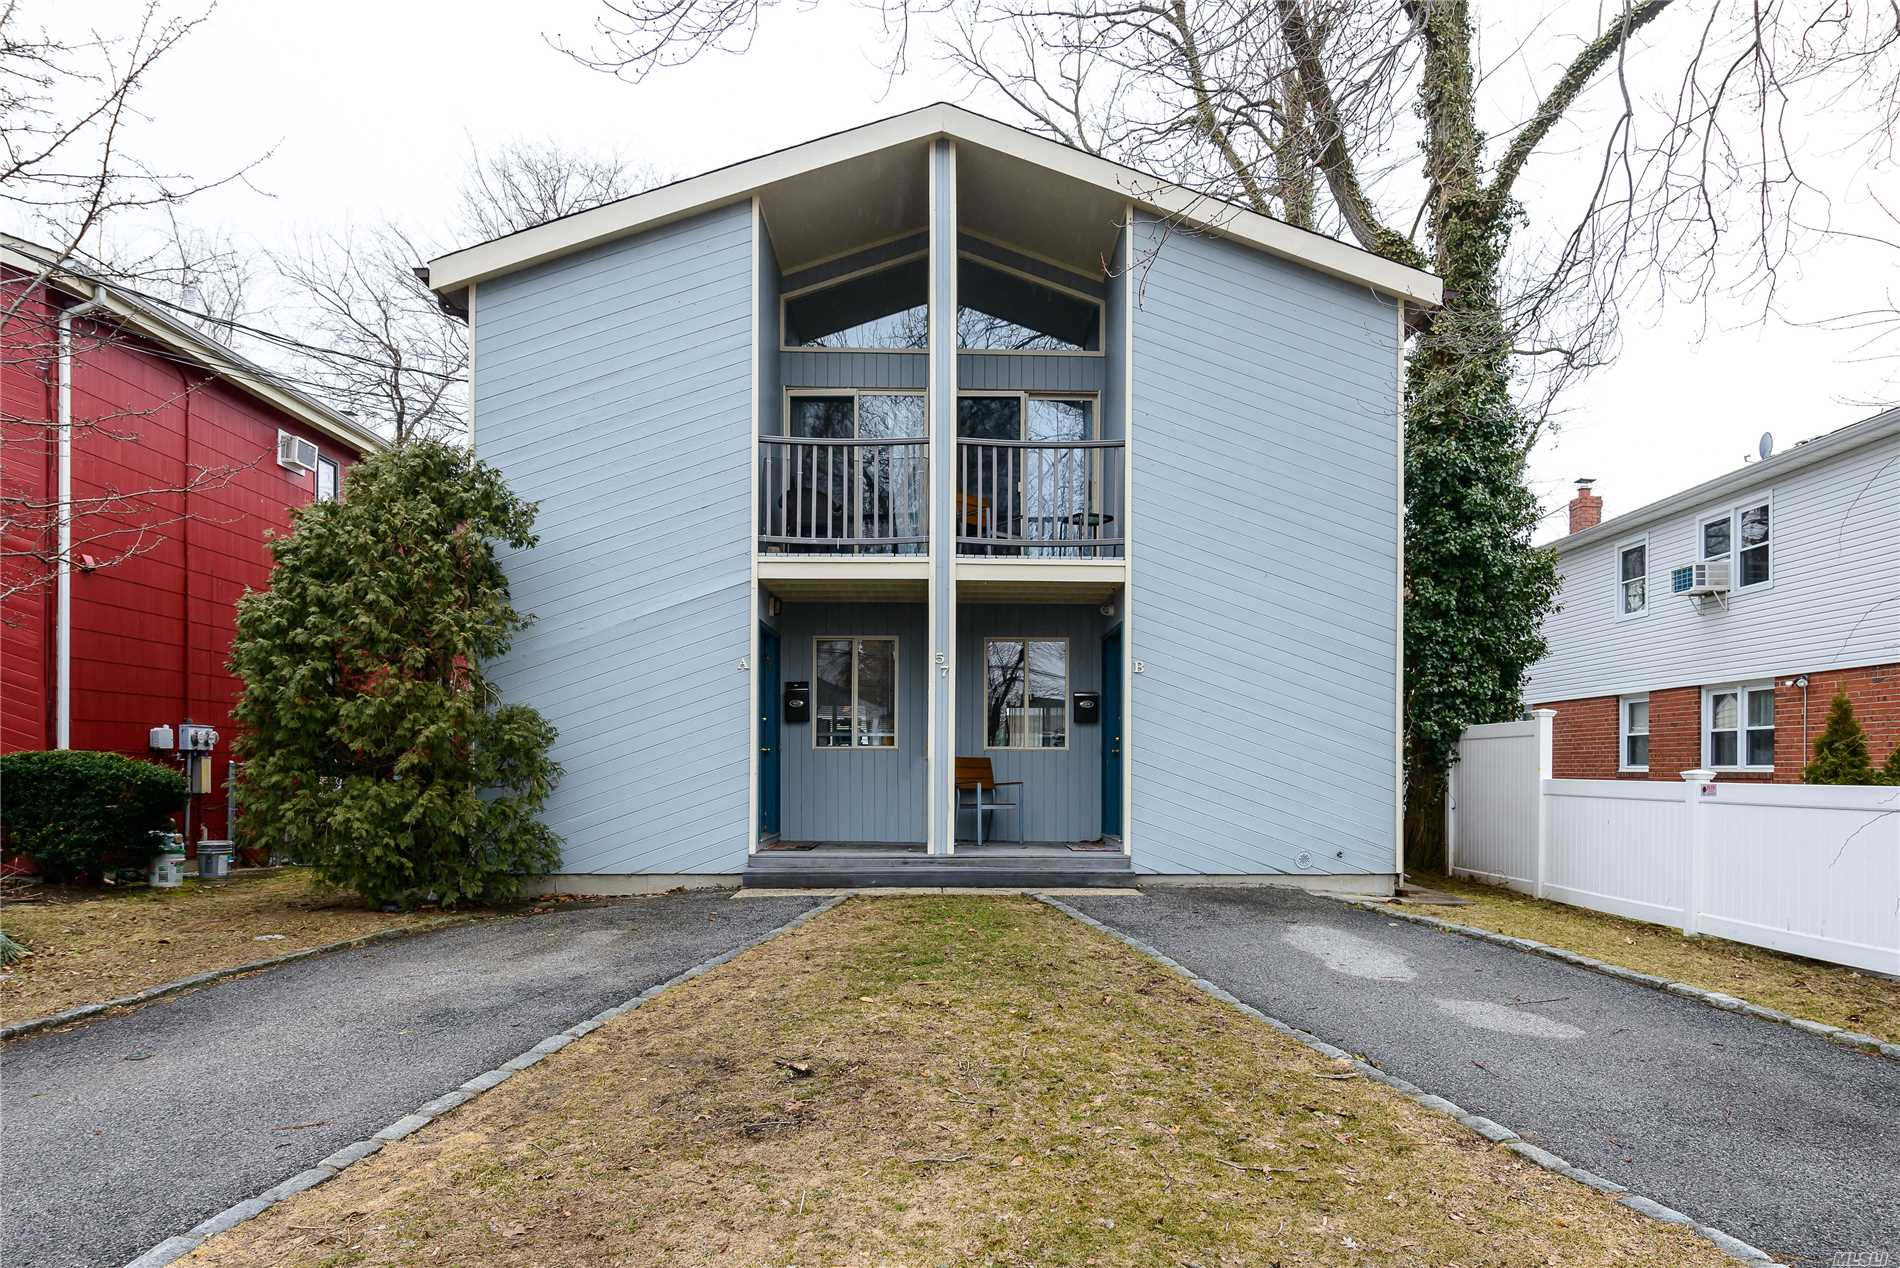 Totally Updated 2 Bedroom 2.5 Bath Townhouse Located In Manhasset Isle Beach Community Offers Soaring Ceilings,  Hardwood Floors, Private Yard, Fireplace, Deck, Patio, Full Basement, Laundry, Parking, Fabulous Location. Guggenheim Elementary Great Location For Commute